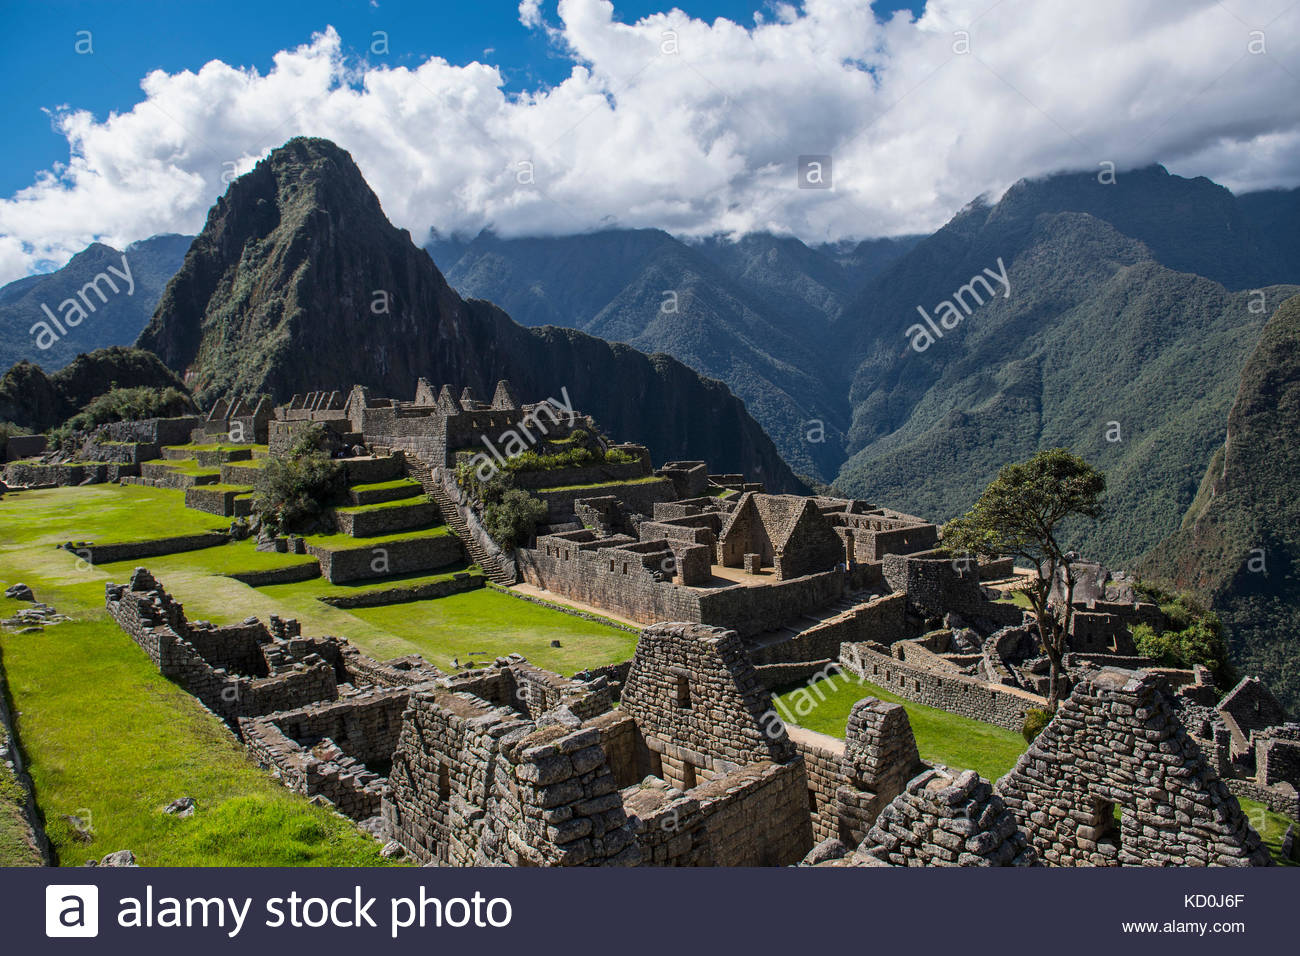 Elevated view of inca ruins, Machu Picchu, Cusco, Peru, South America - Stock Image